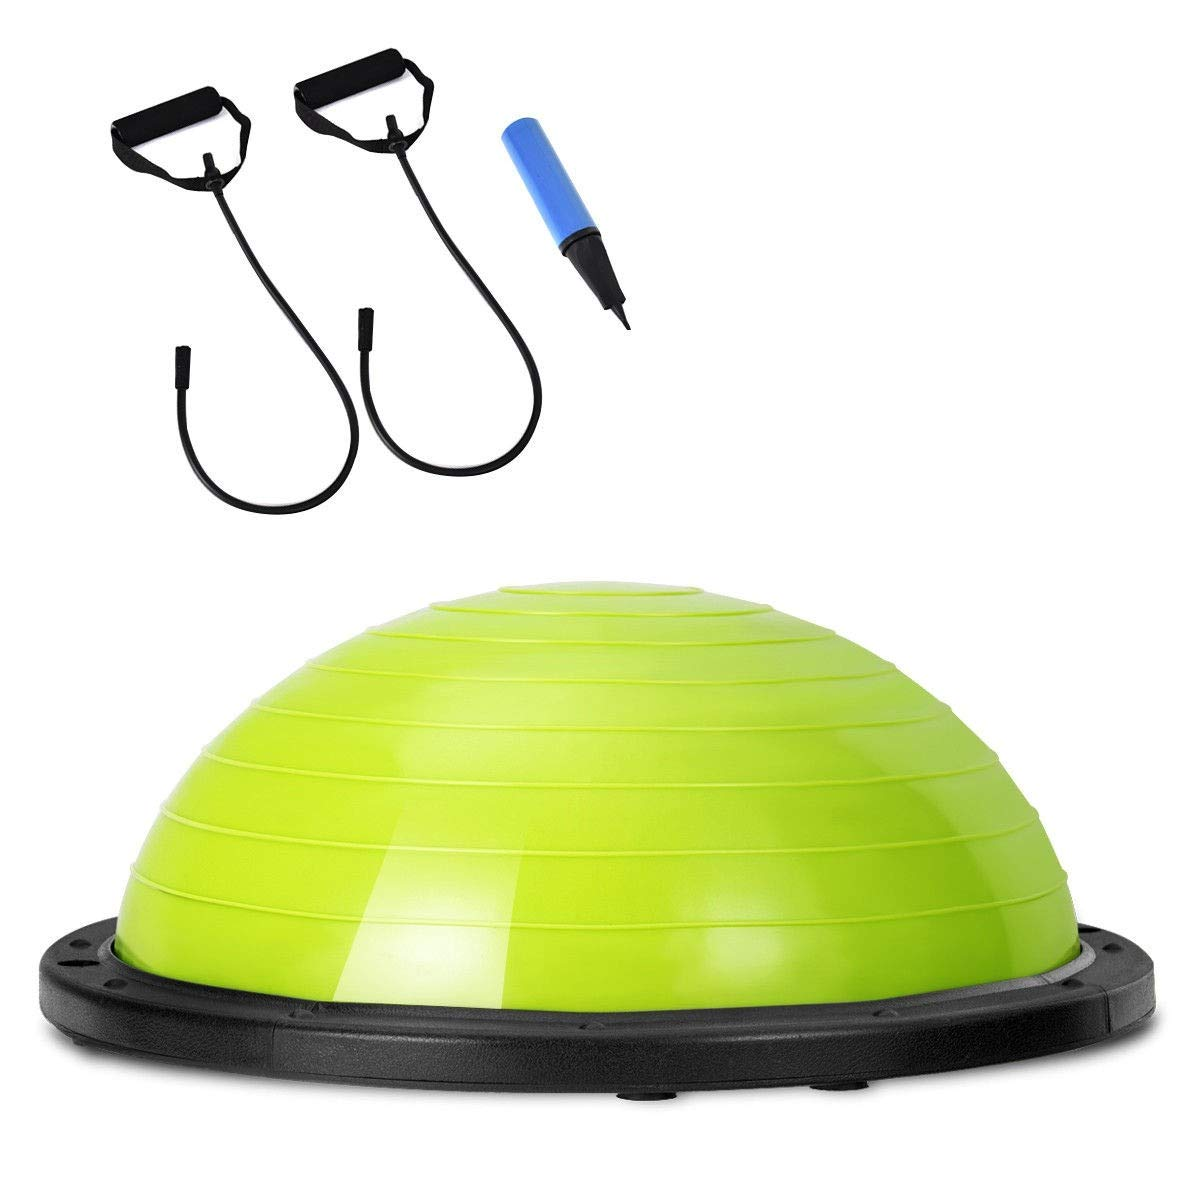 Exercise Ball, 23'' Exercise Yoga Ball Balance Trainer with Pump, Green by MD Group (Image #1)